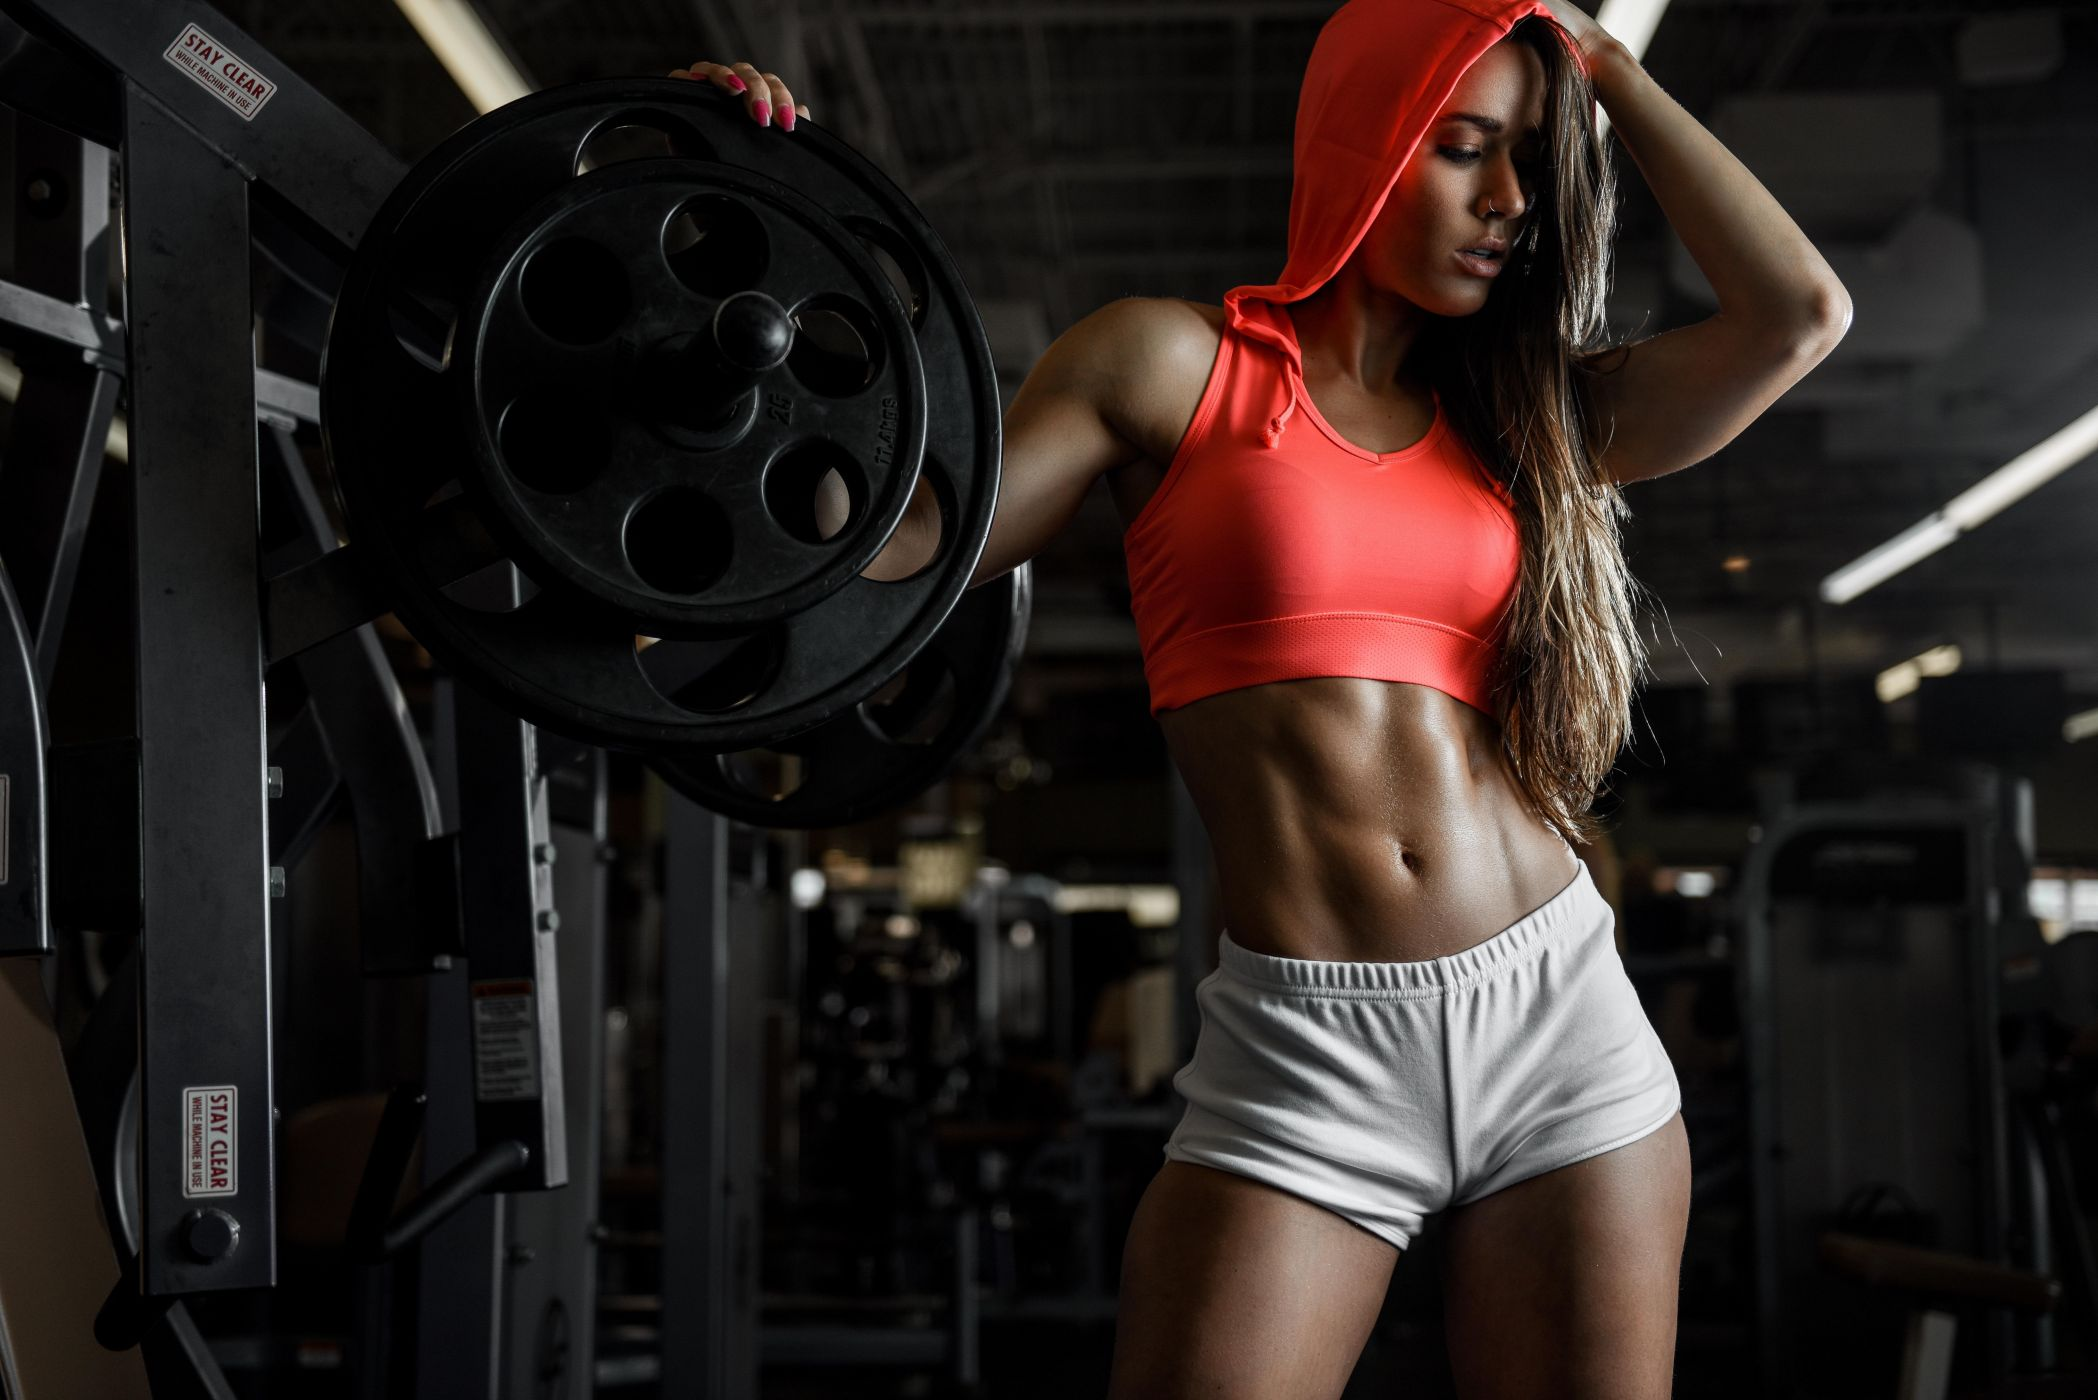 women fitness models images - HD 2098×1400